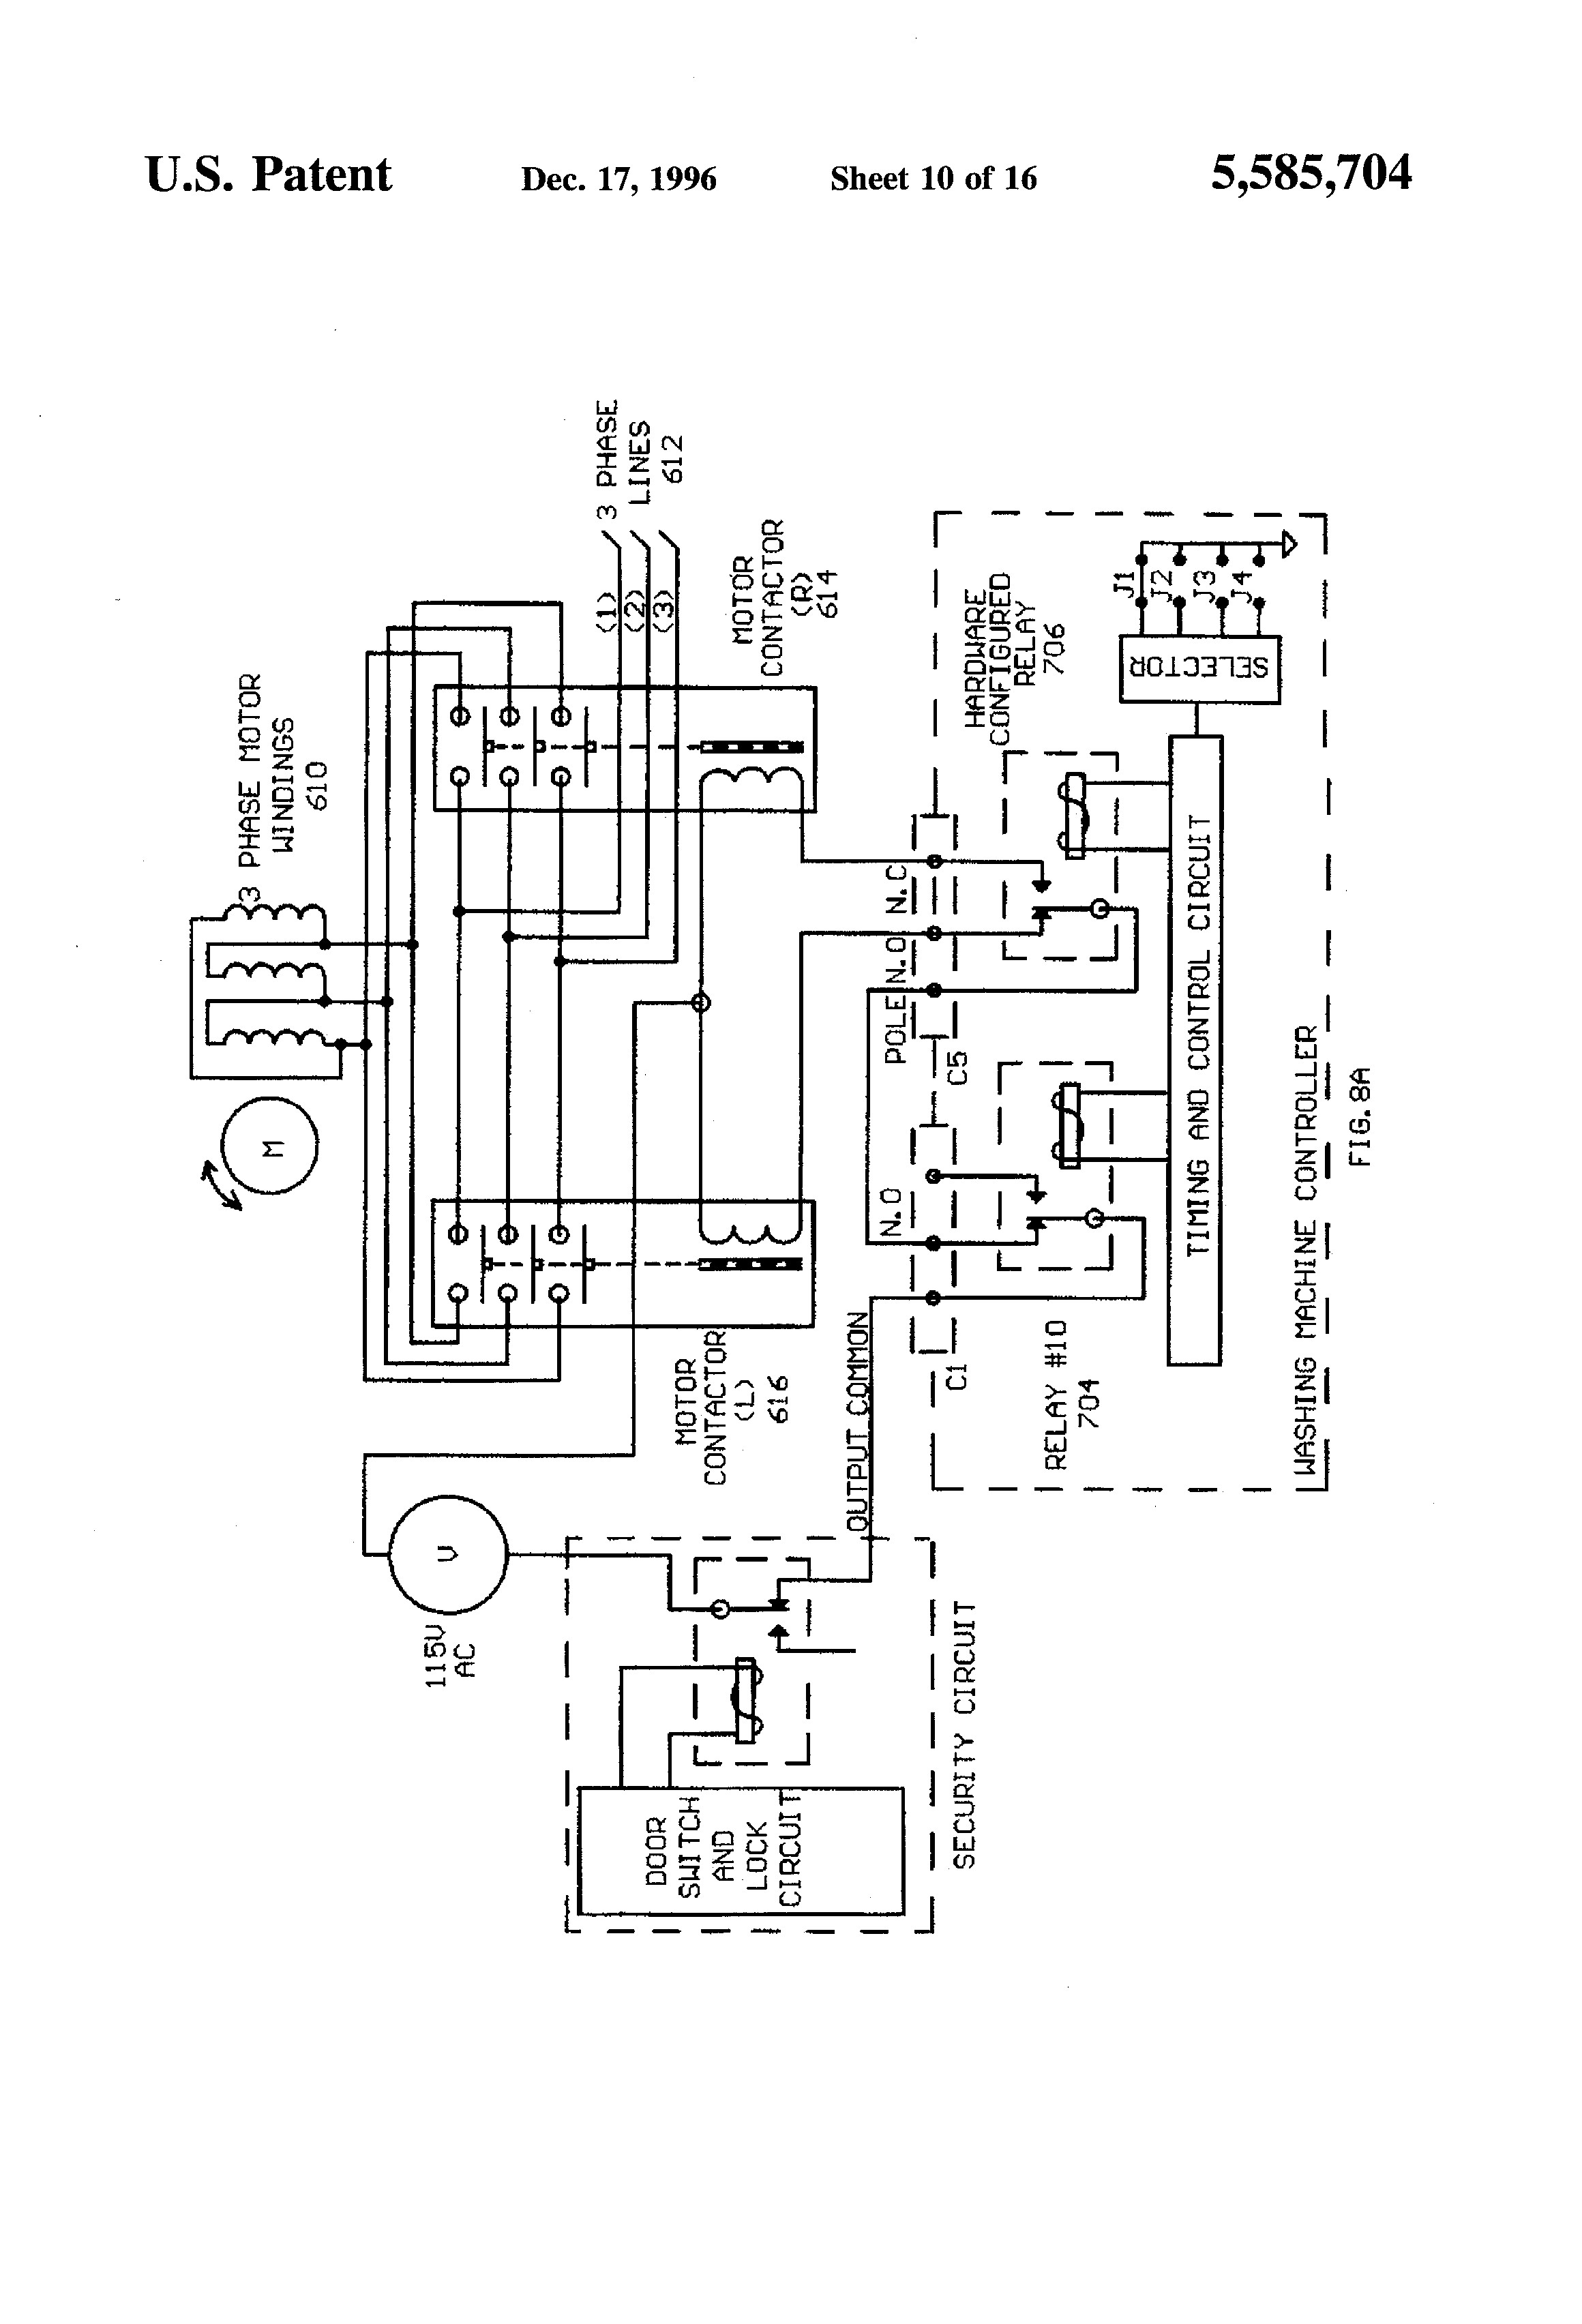 Diagram Patent Us puter Means For mercial Washing Machines Inside Whirlpool Machine Wiring Tattoo Power Schematic